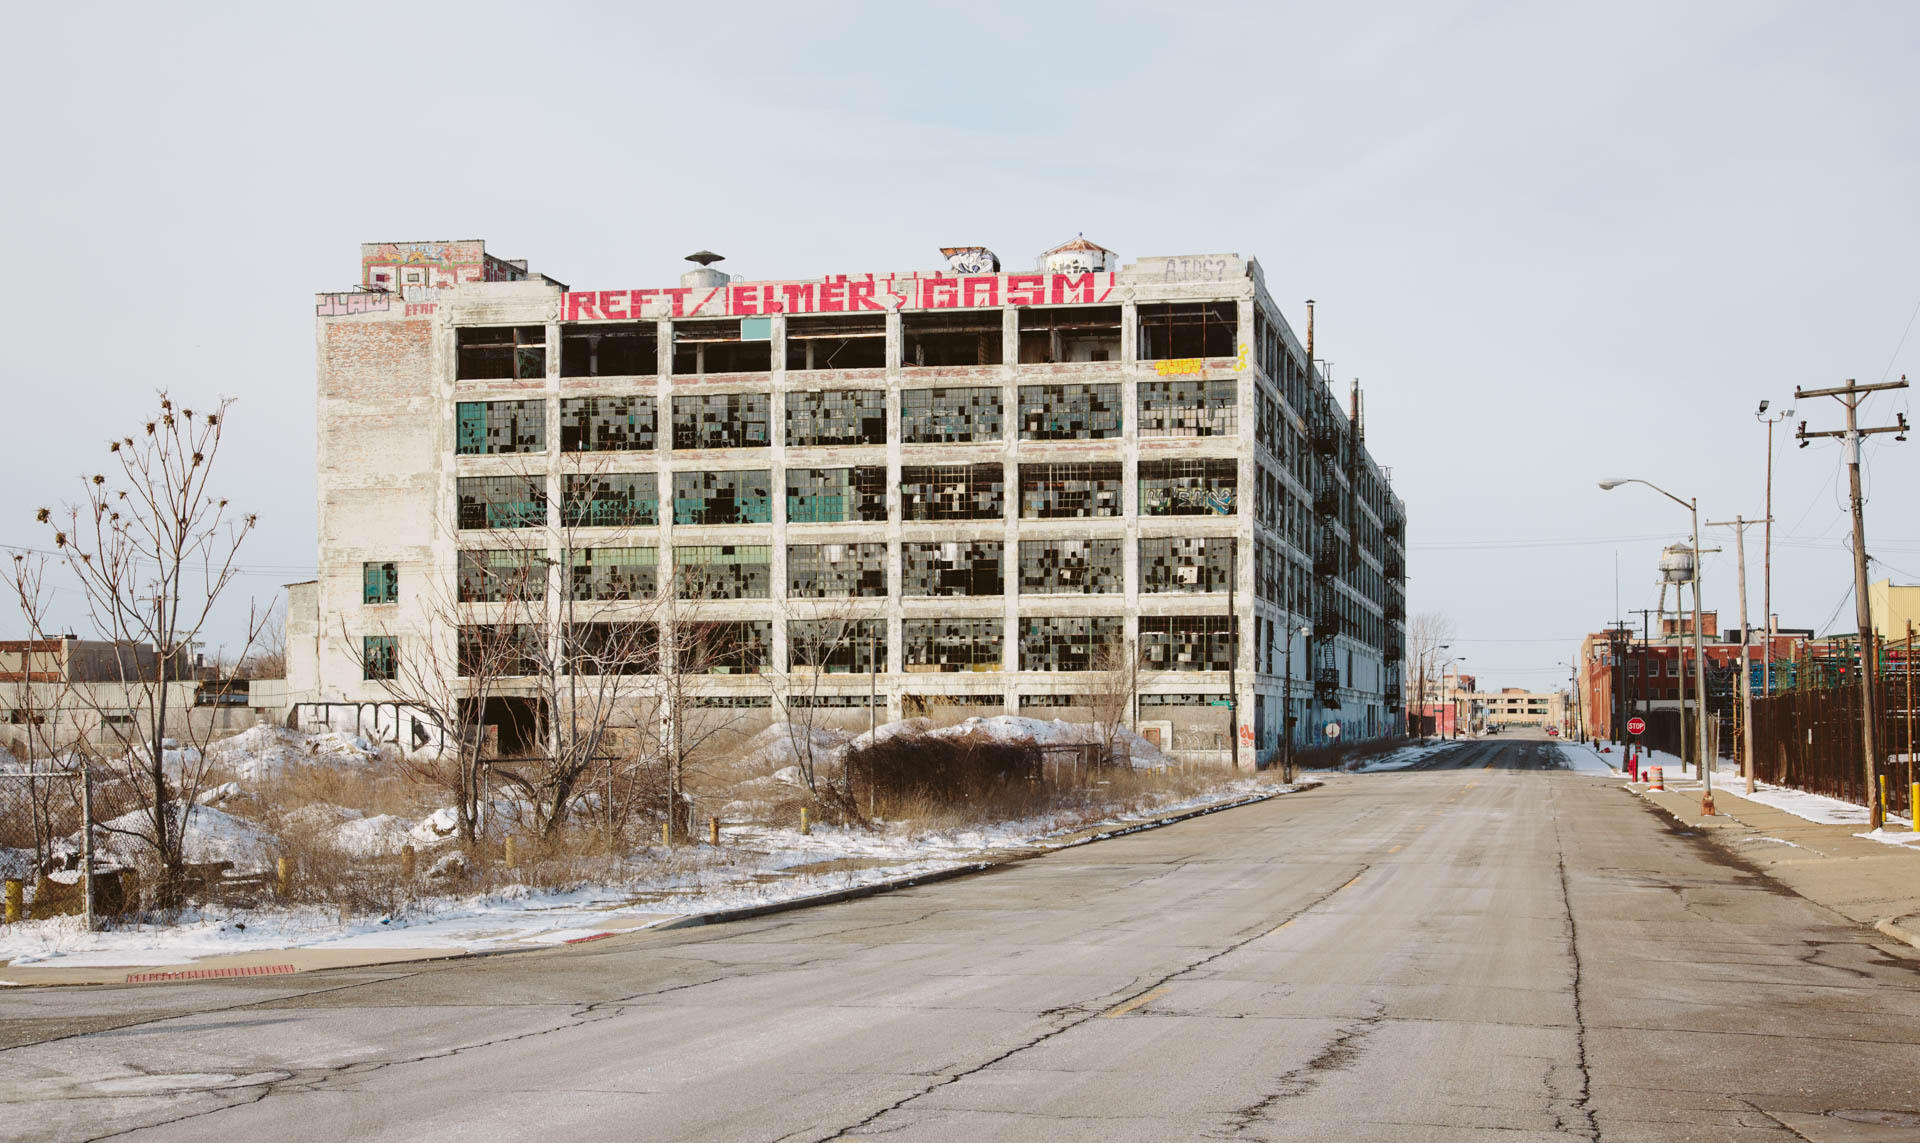 detroit-abandoned-fisher-21-auto-plant